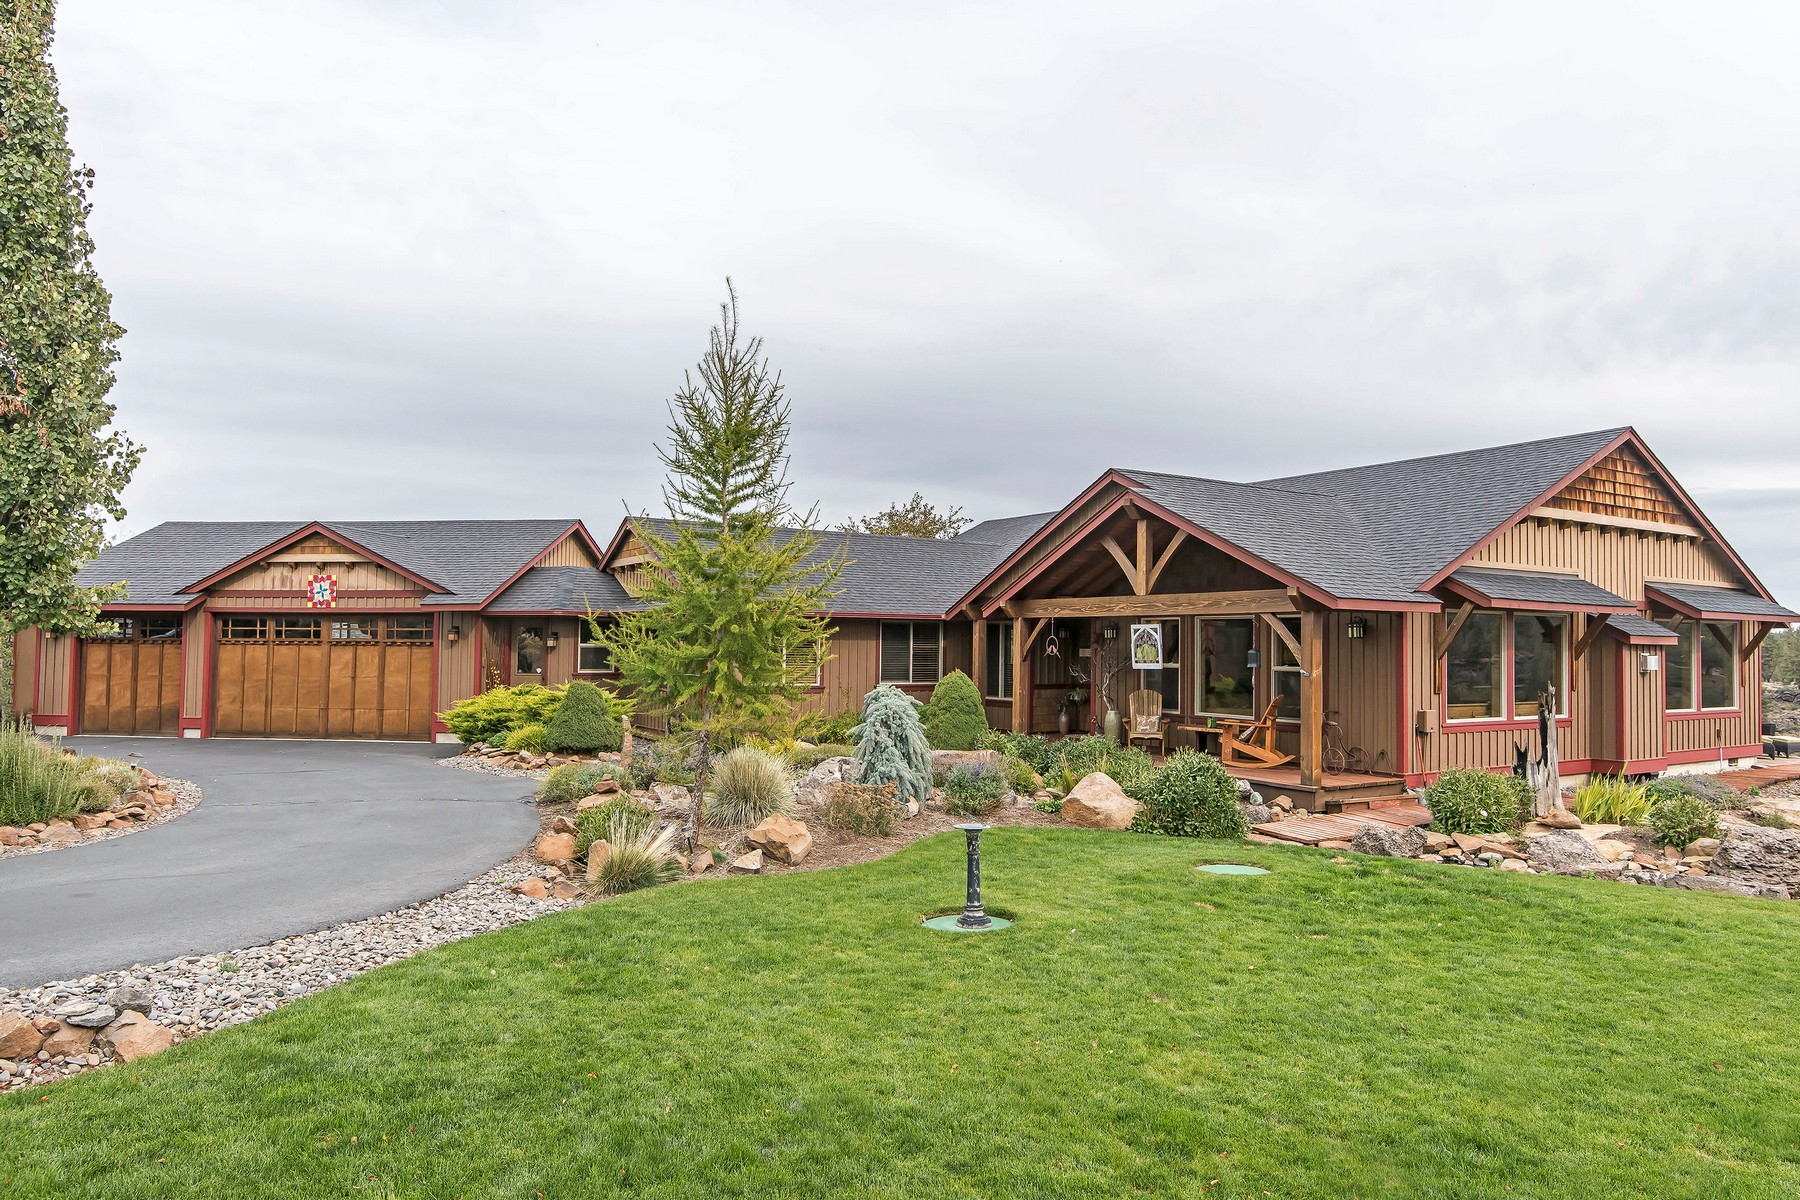 Other Residential Homes for Active at 17167 Mountain View Road Sisters, OR 97759 17167 Mountain View Road Sisters, Oregon 97759 United States